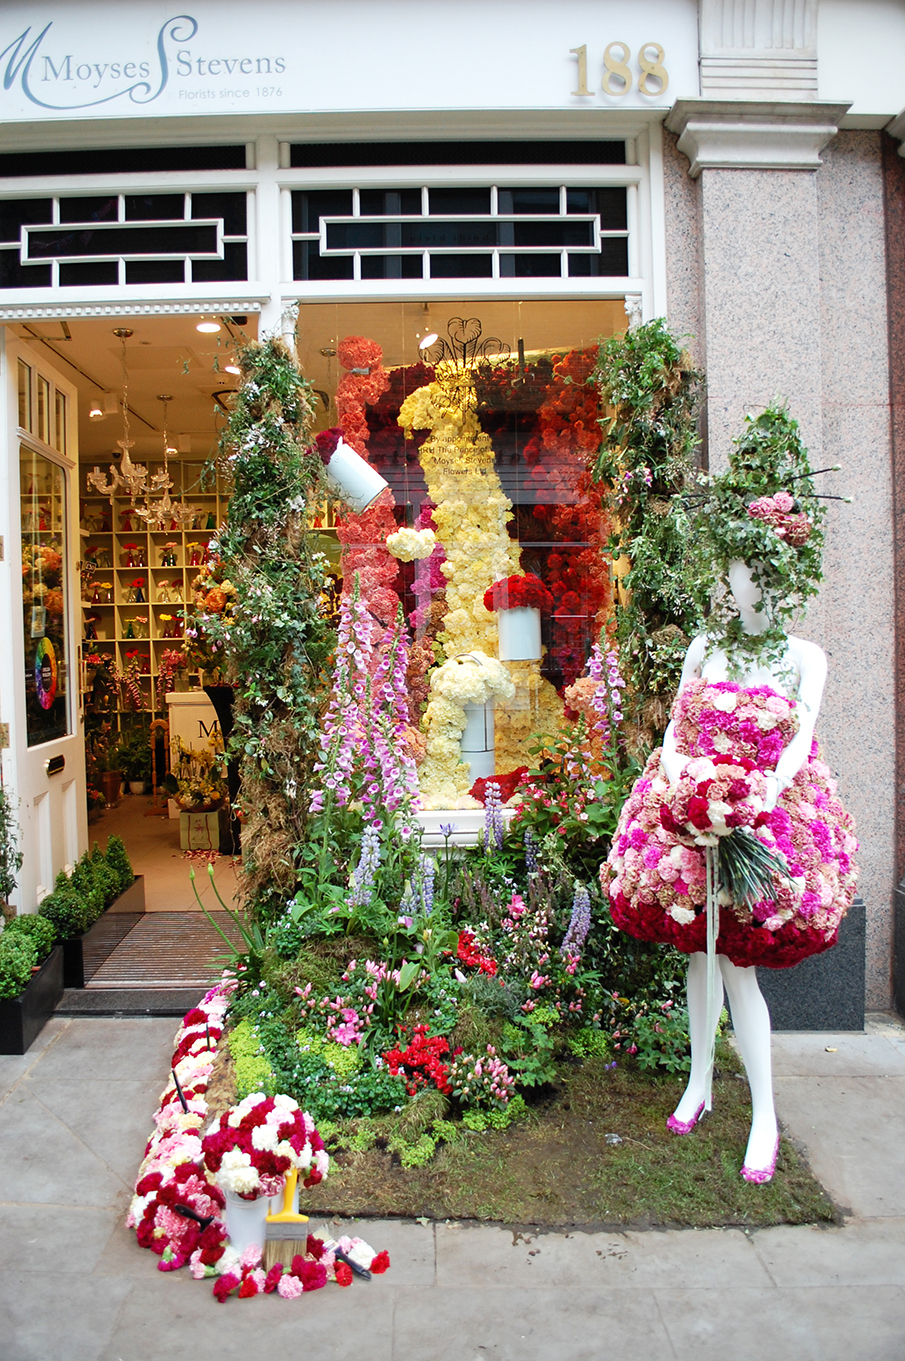 Moyses stevens overflowing flowers spring window display